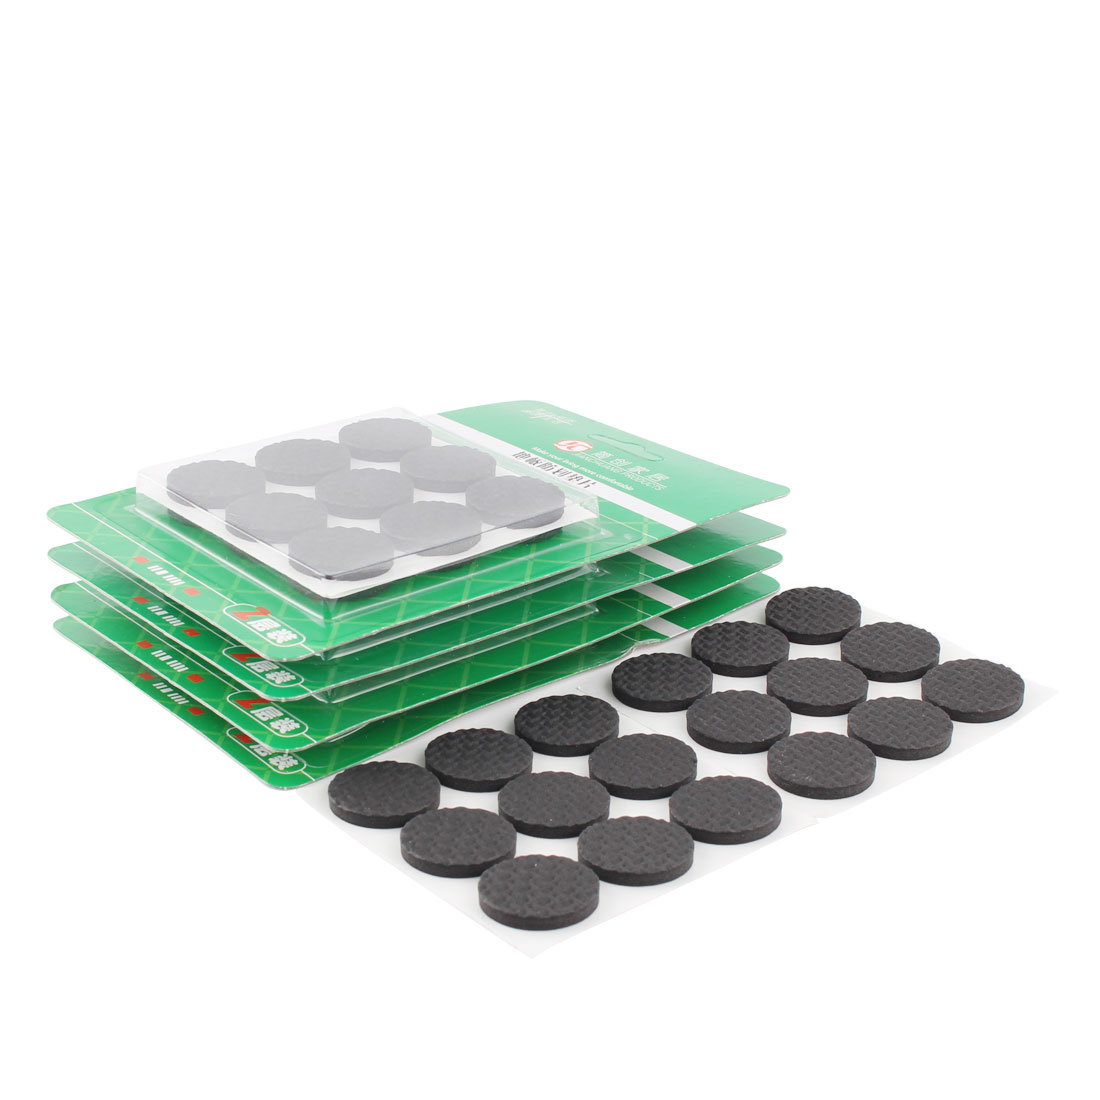 Houseware Round EVA Self Stick Floor Protect Furniture Foot Pads Mats Black 25mm Dia 90pcs